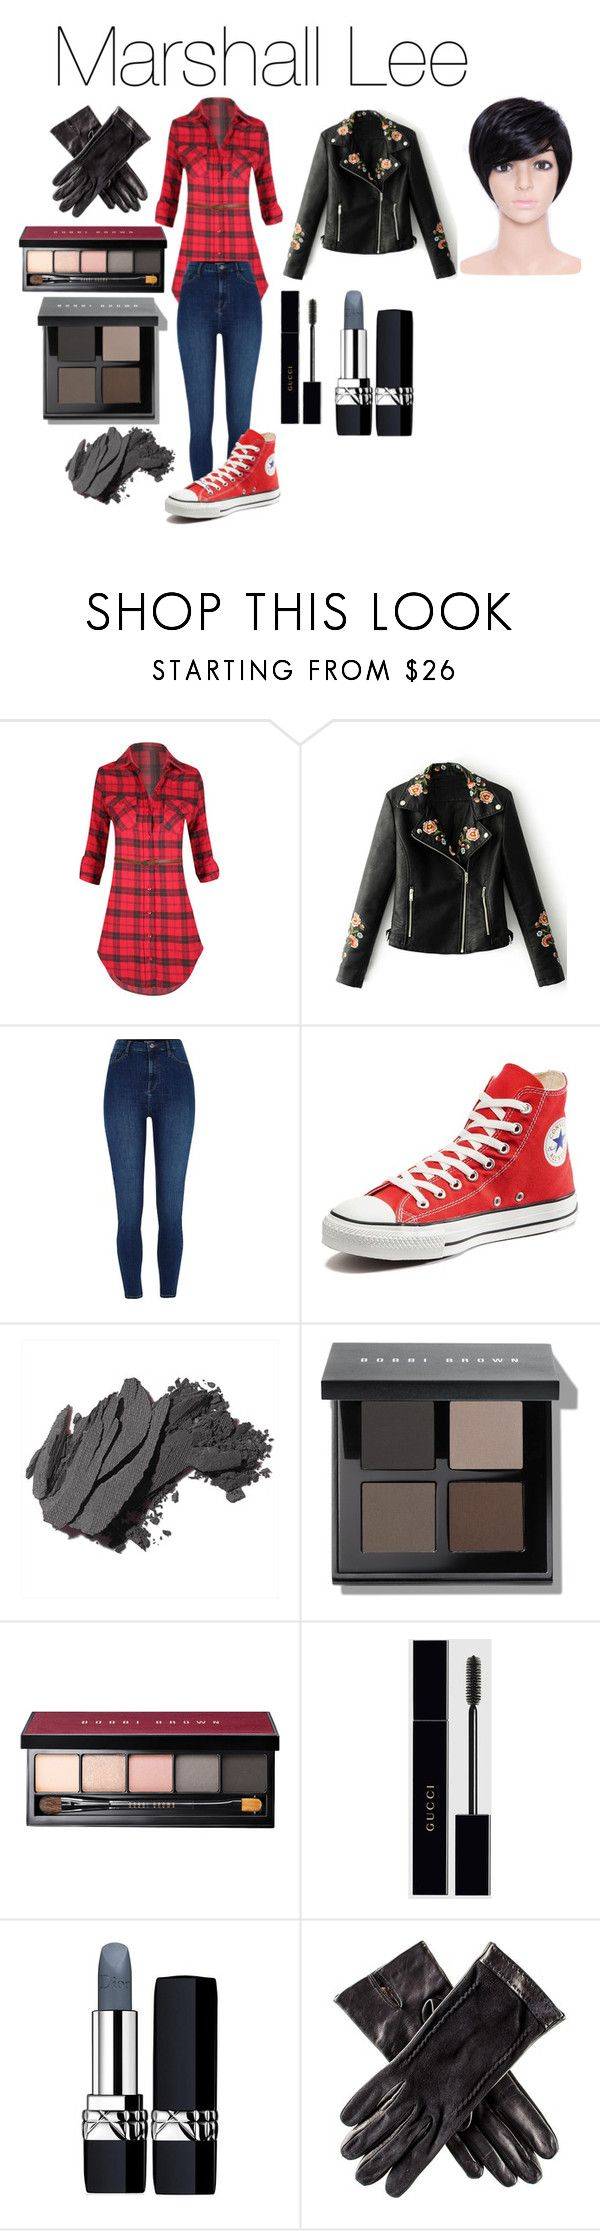 """Marshall Lee the Vampire King from Adventure Time"" by tori-camilleri on Polyvore featuring WithChic, River Island, Converse, Bobbi Brown Cosmetics, Gucci, Christian Dior and Black"